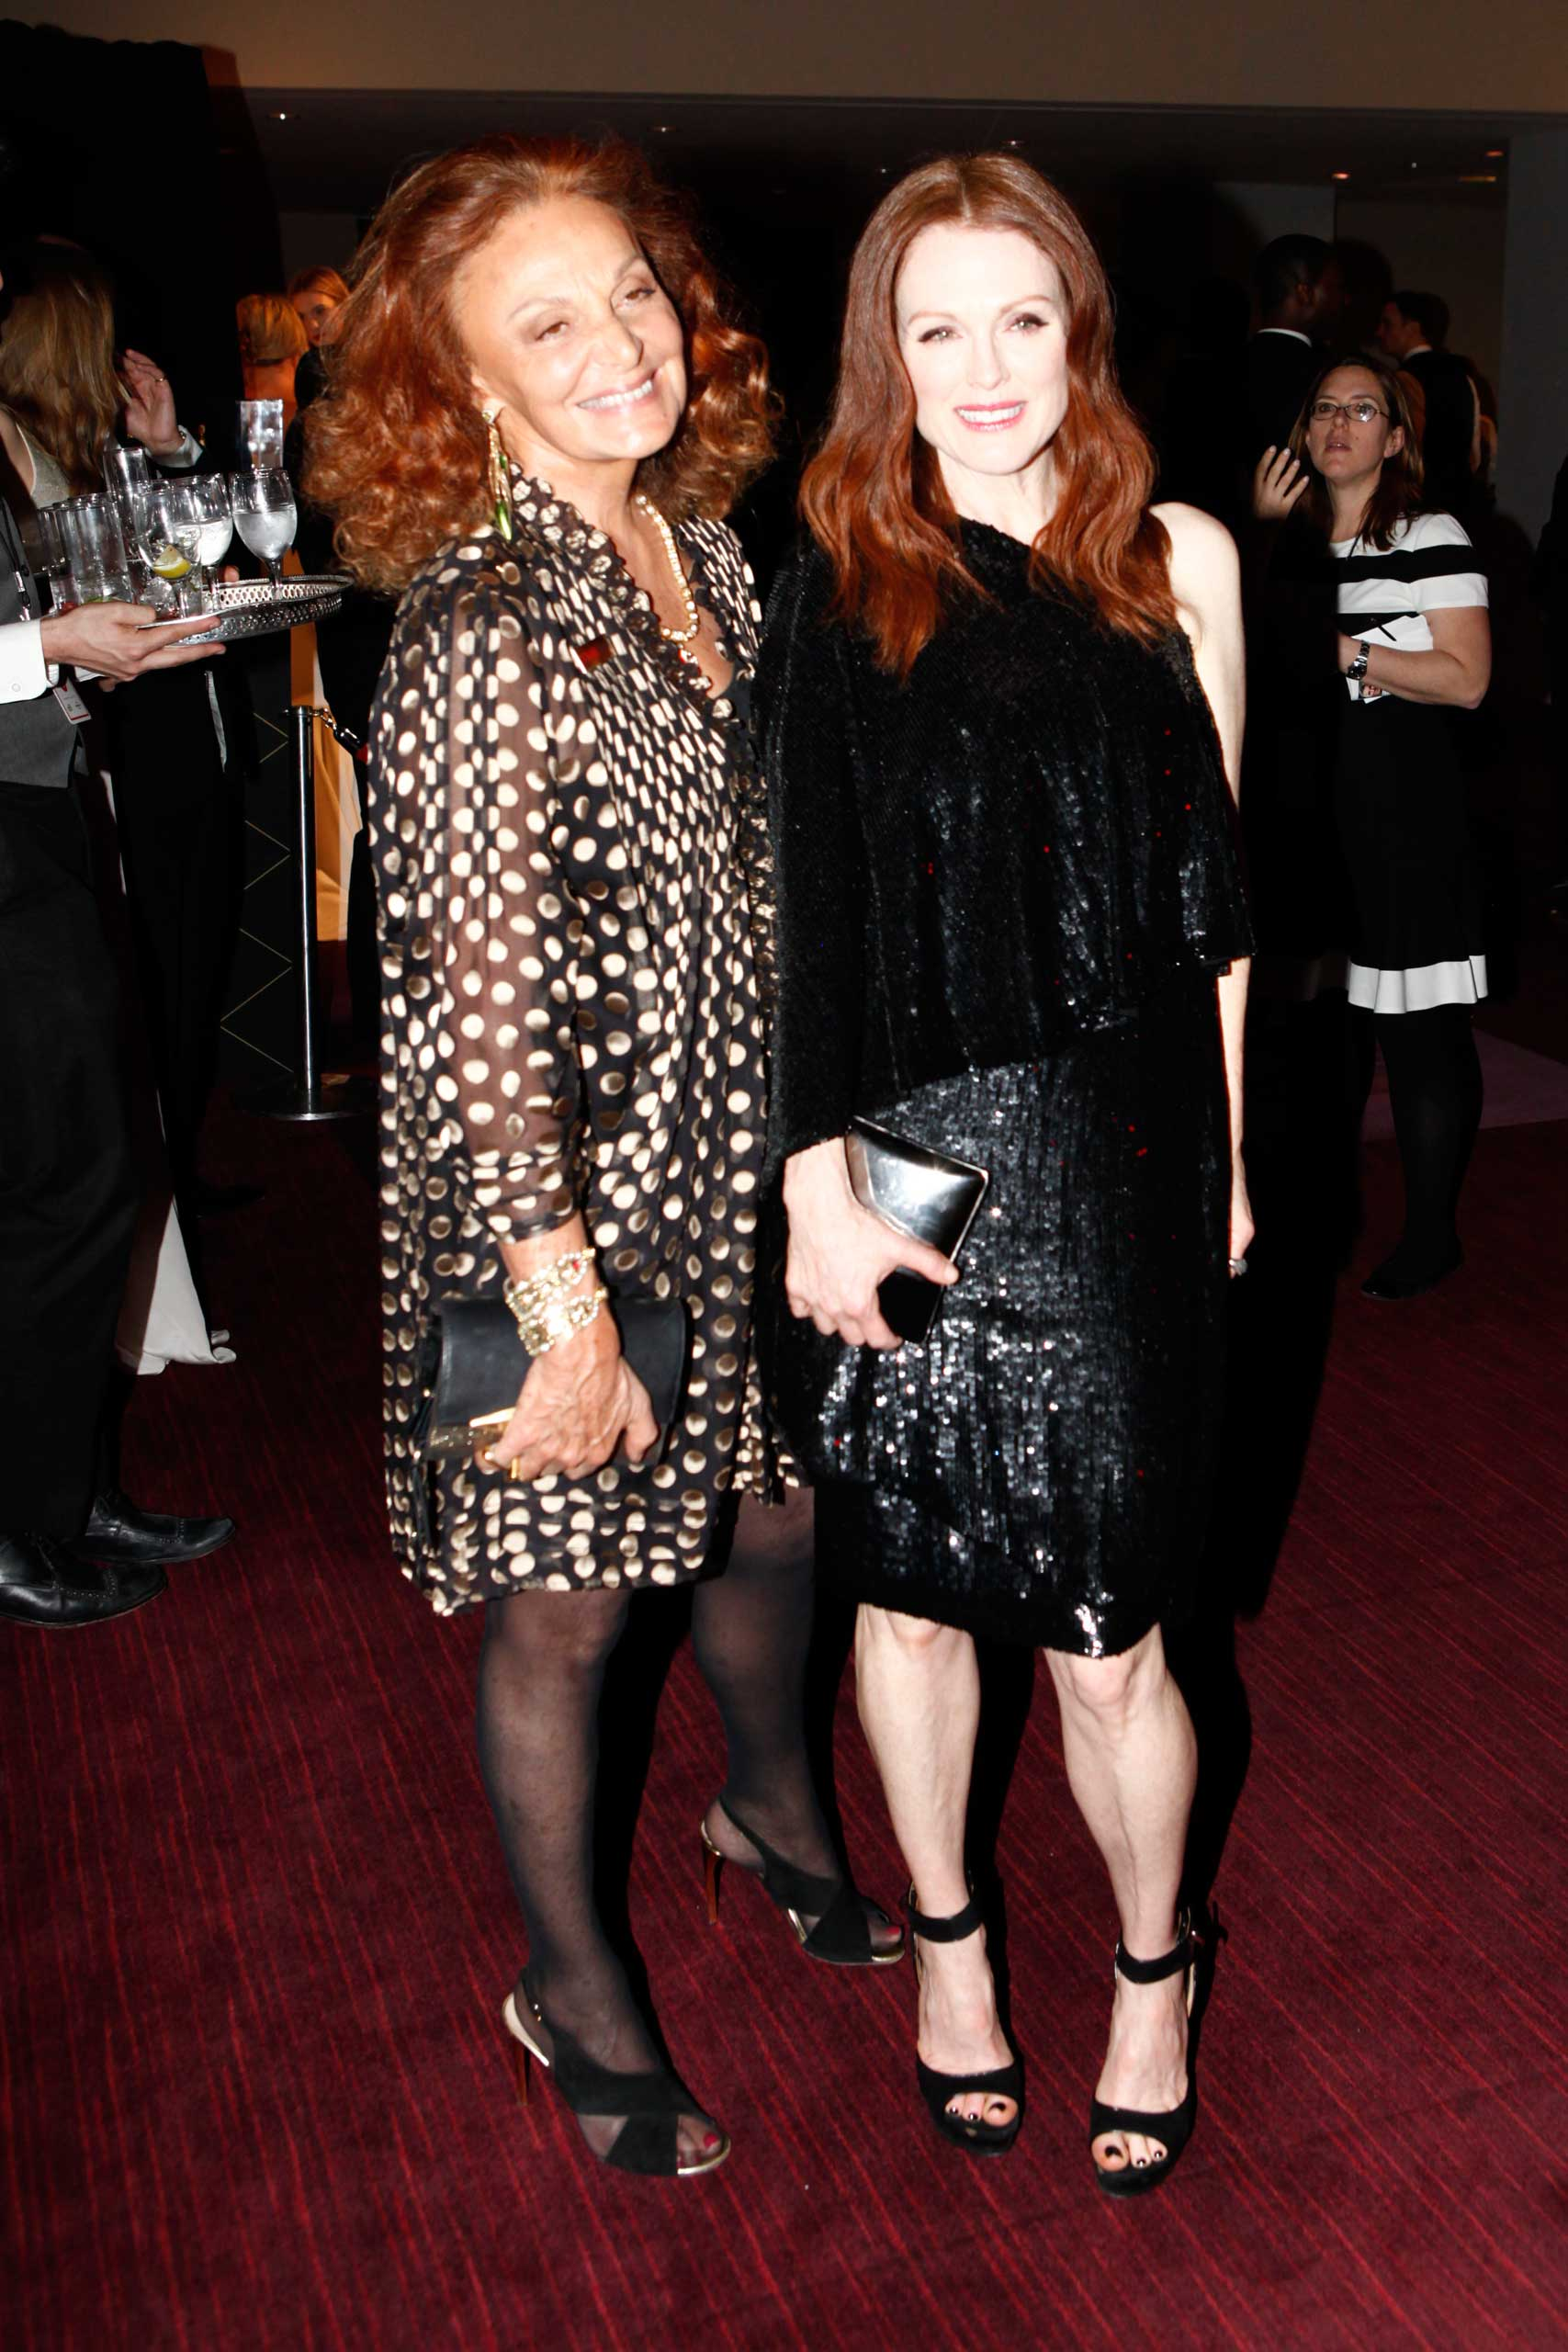 Diane von Furstenberg and Julianne Moore attend the TIME 100 Gala at Jazz at Lincoln Center in New York City on April 21, 2015.